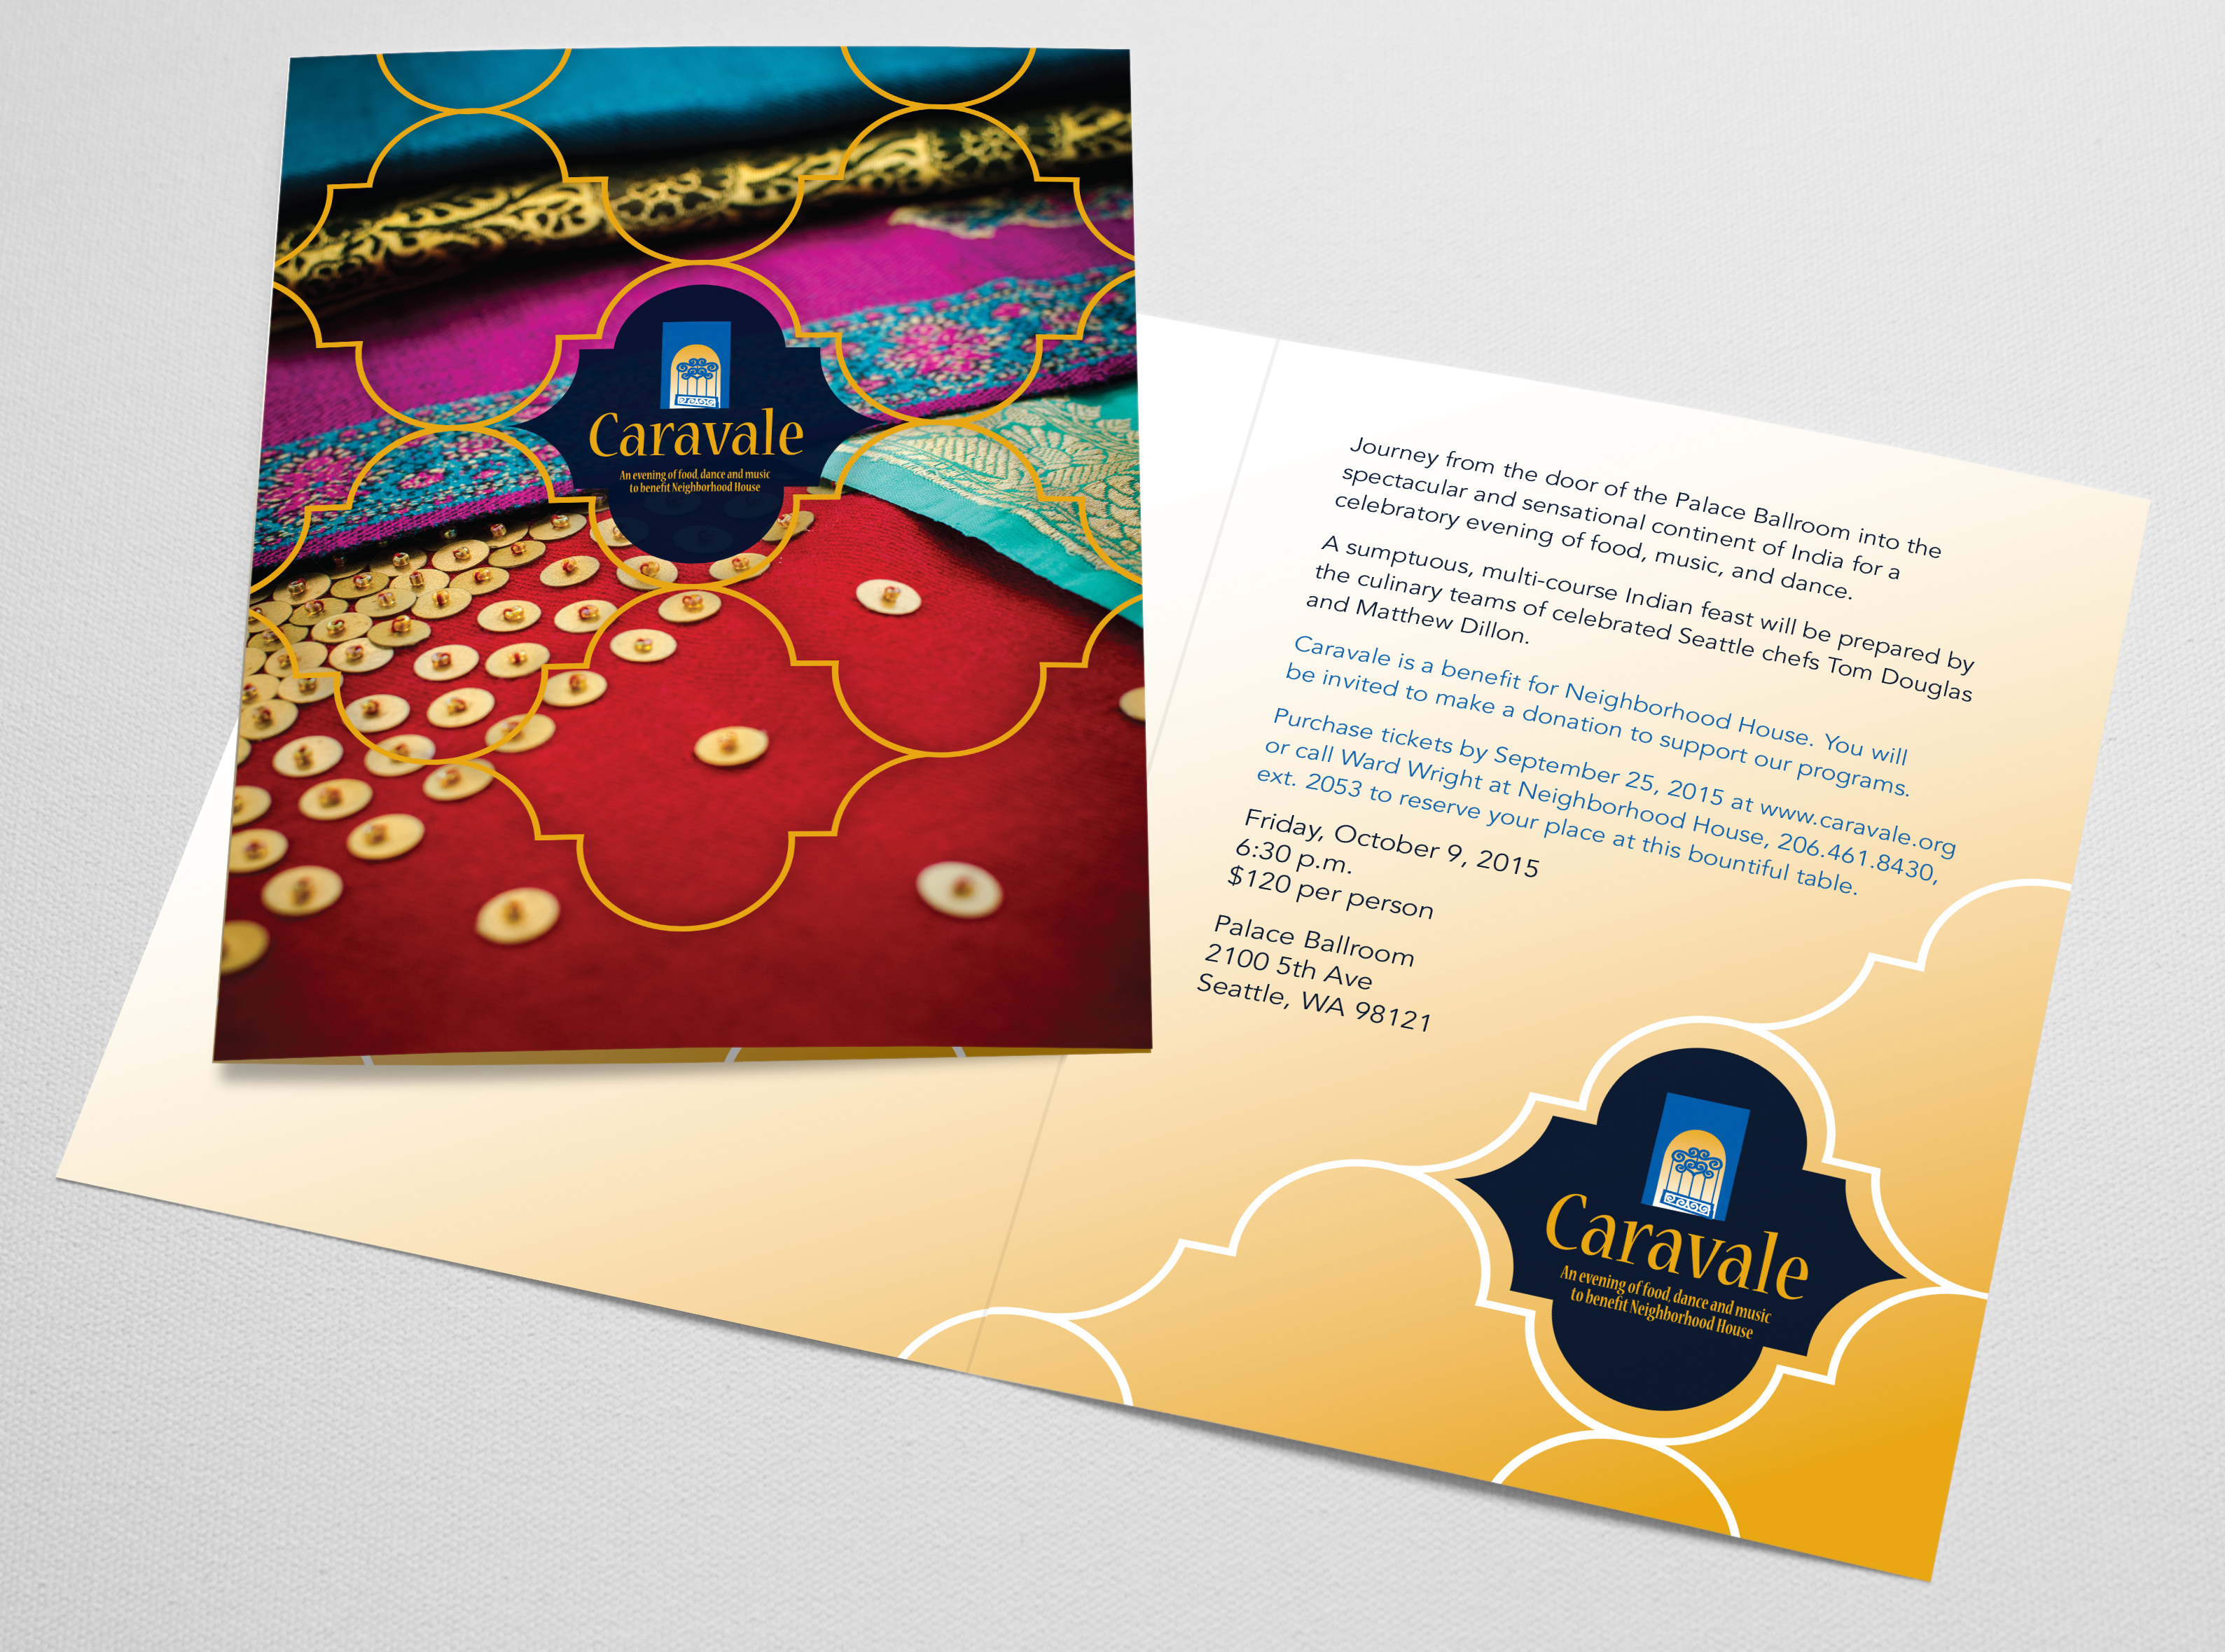 Caravale invitation featuring sari fabrics photography and Indian patterns